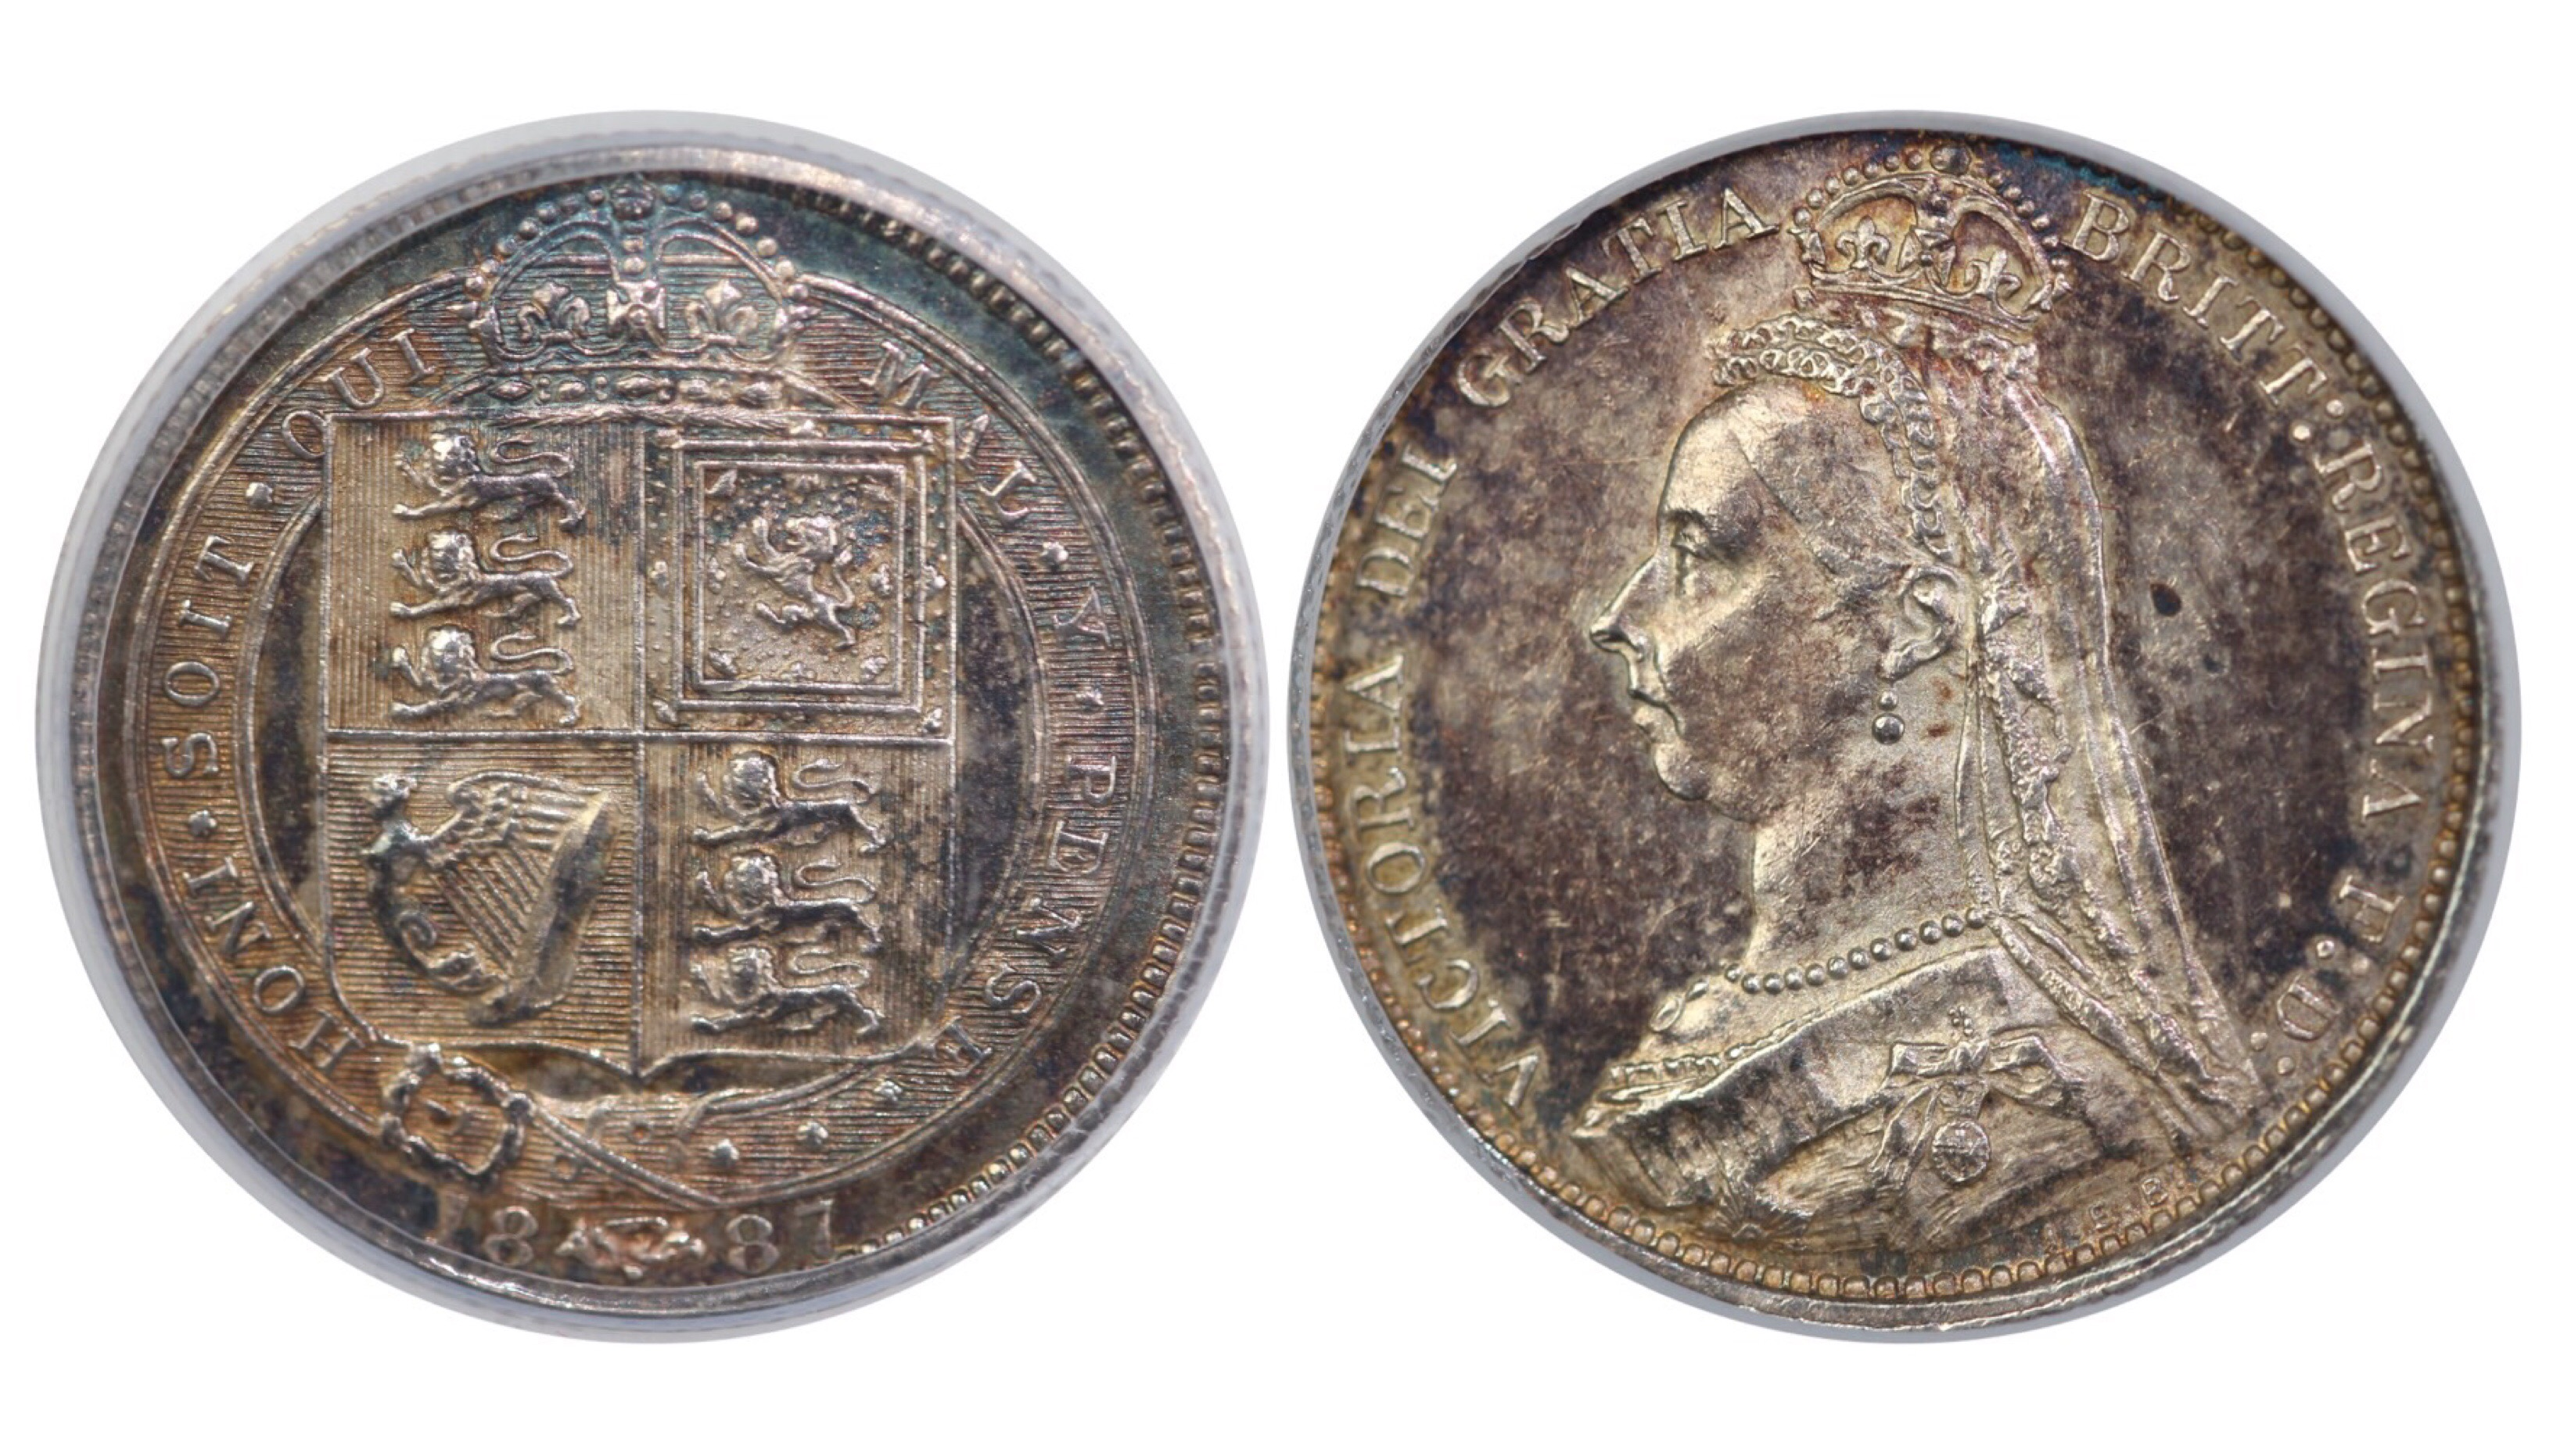 1887 Sixpence, CGS 65, Withdrawn type, Victoria, ESC 1752, UIN 22811